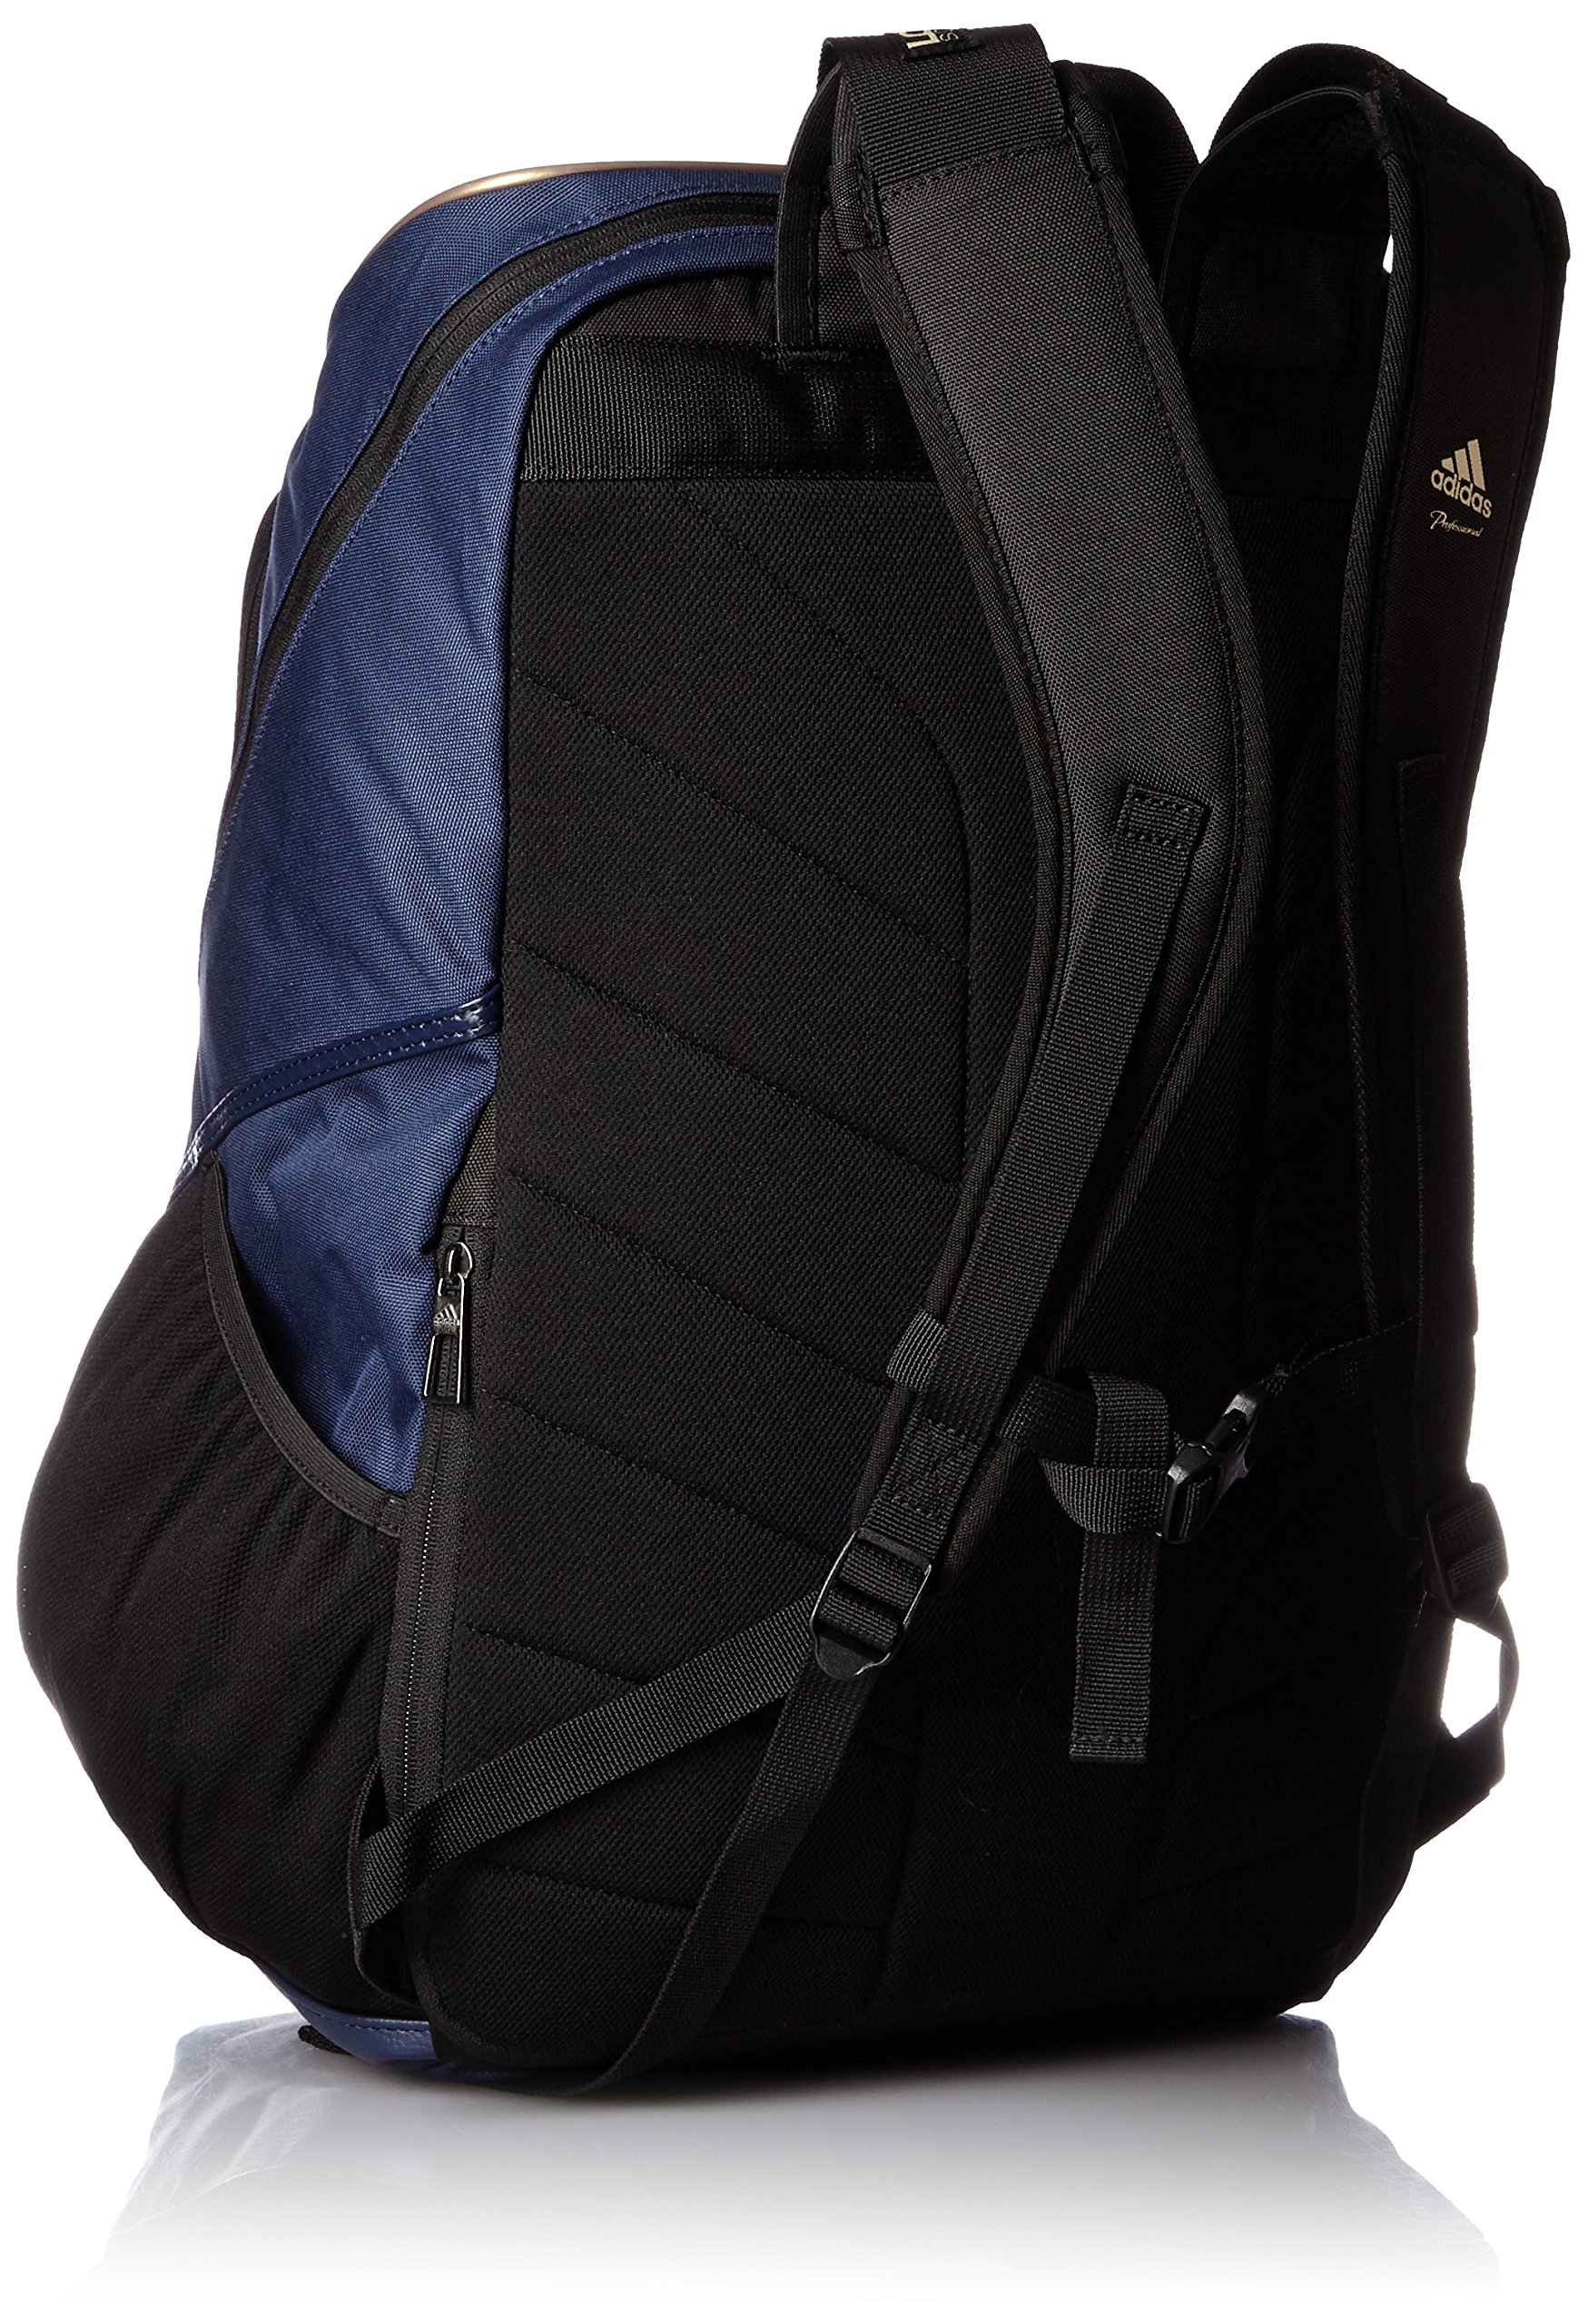 adidas Professional backpack BIN37 AP2768 (College Navy / Gold Met) by adidas (Image #2)